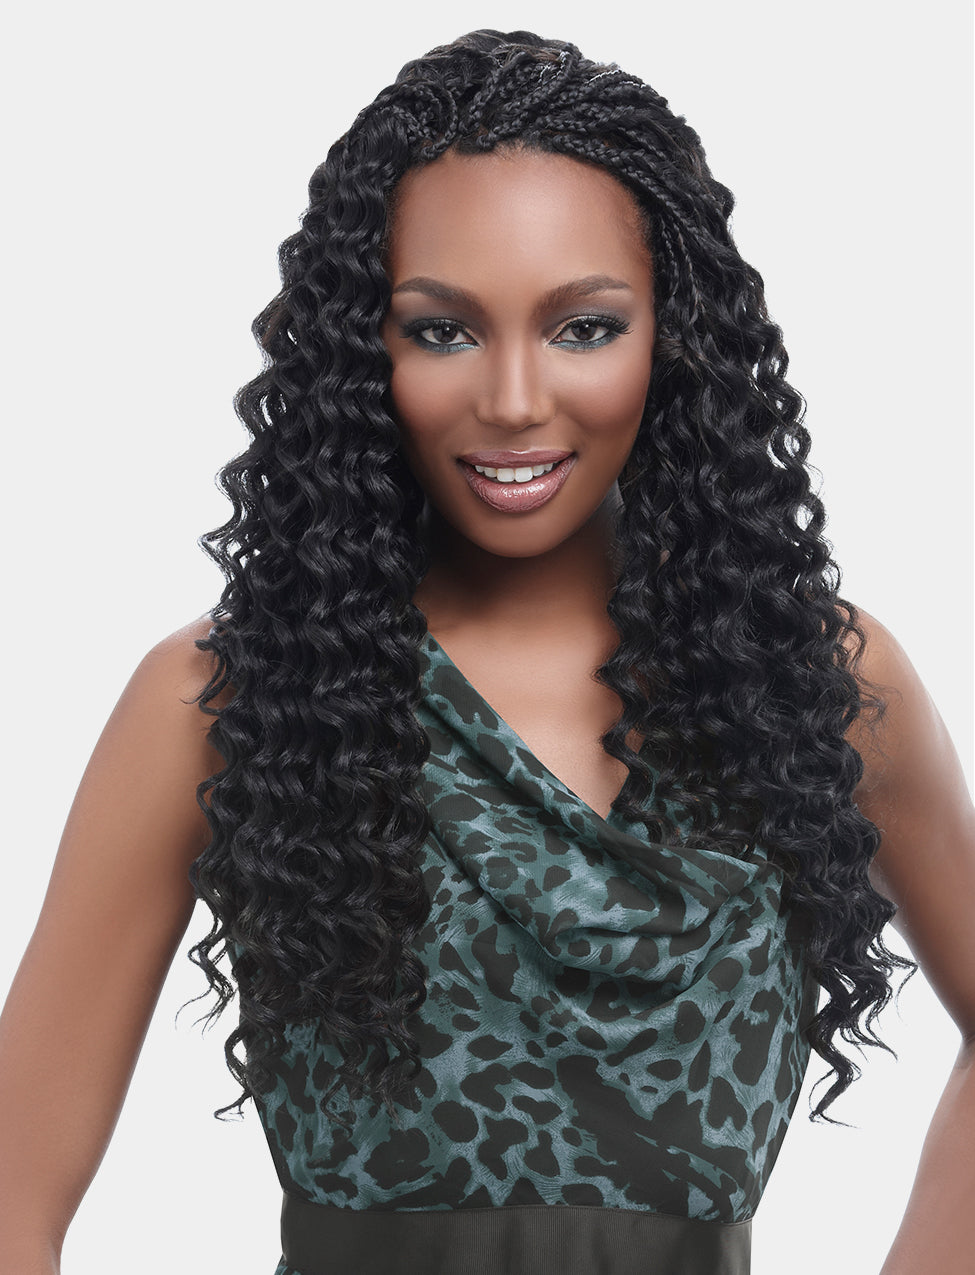 HARLEM125 KIMA SYNTHETIC CROCHET BRAIDING HAIR RIPPLE DEEP - Beauty Bar & Supply